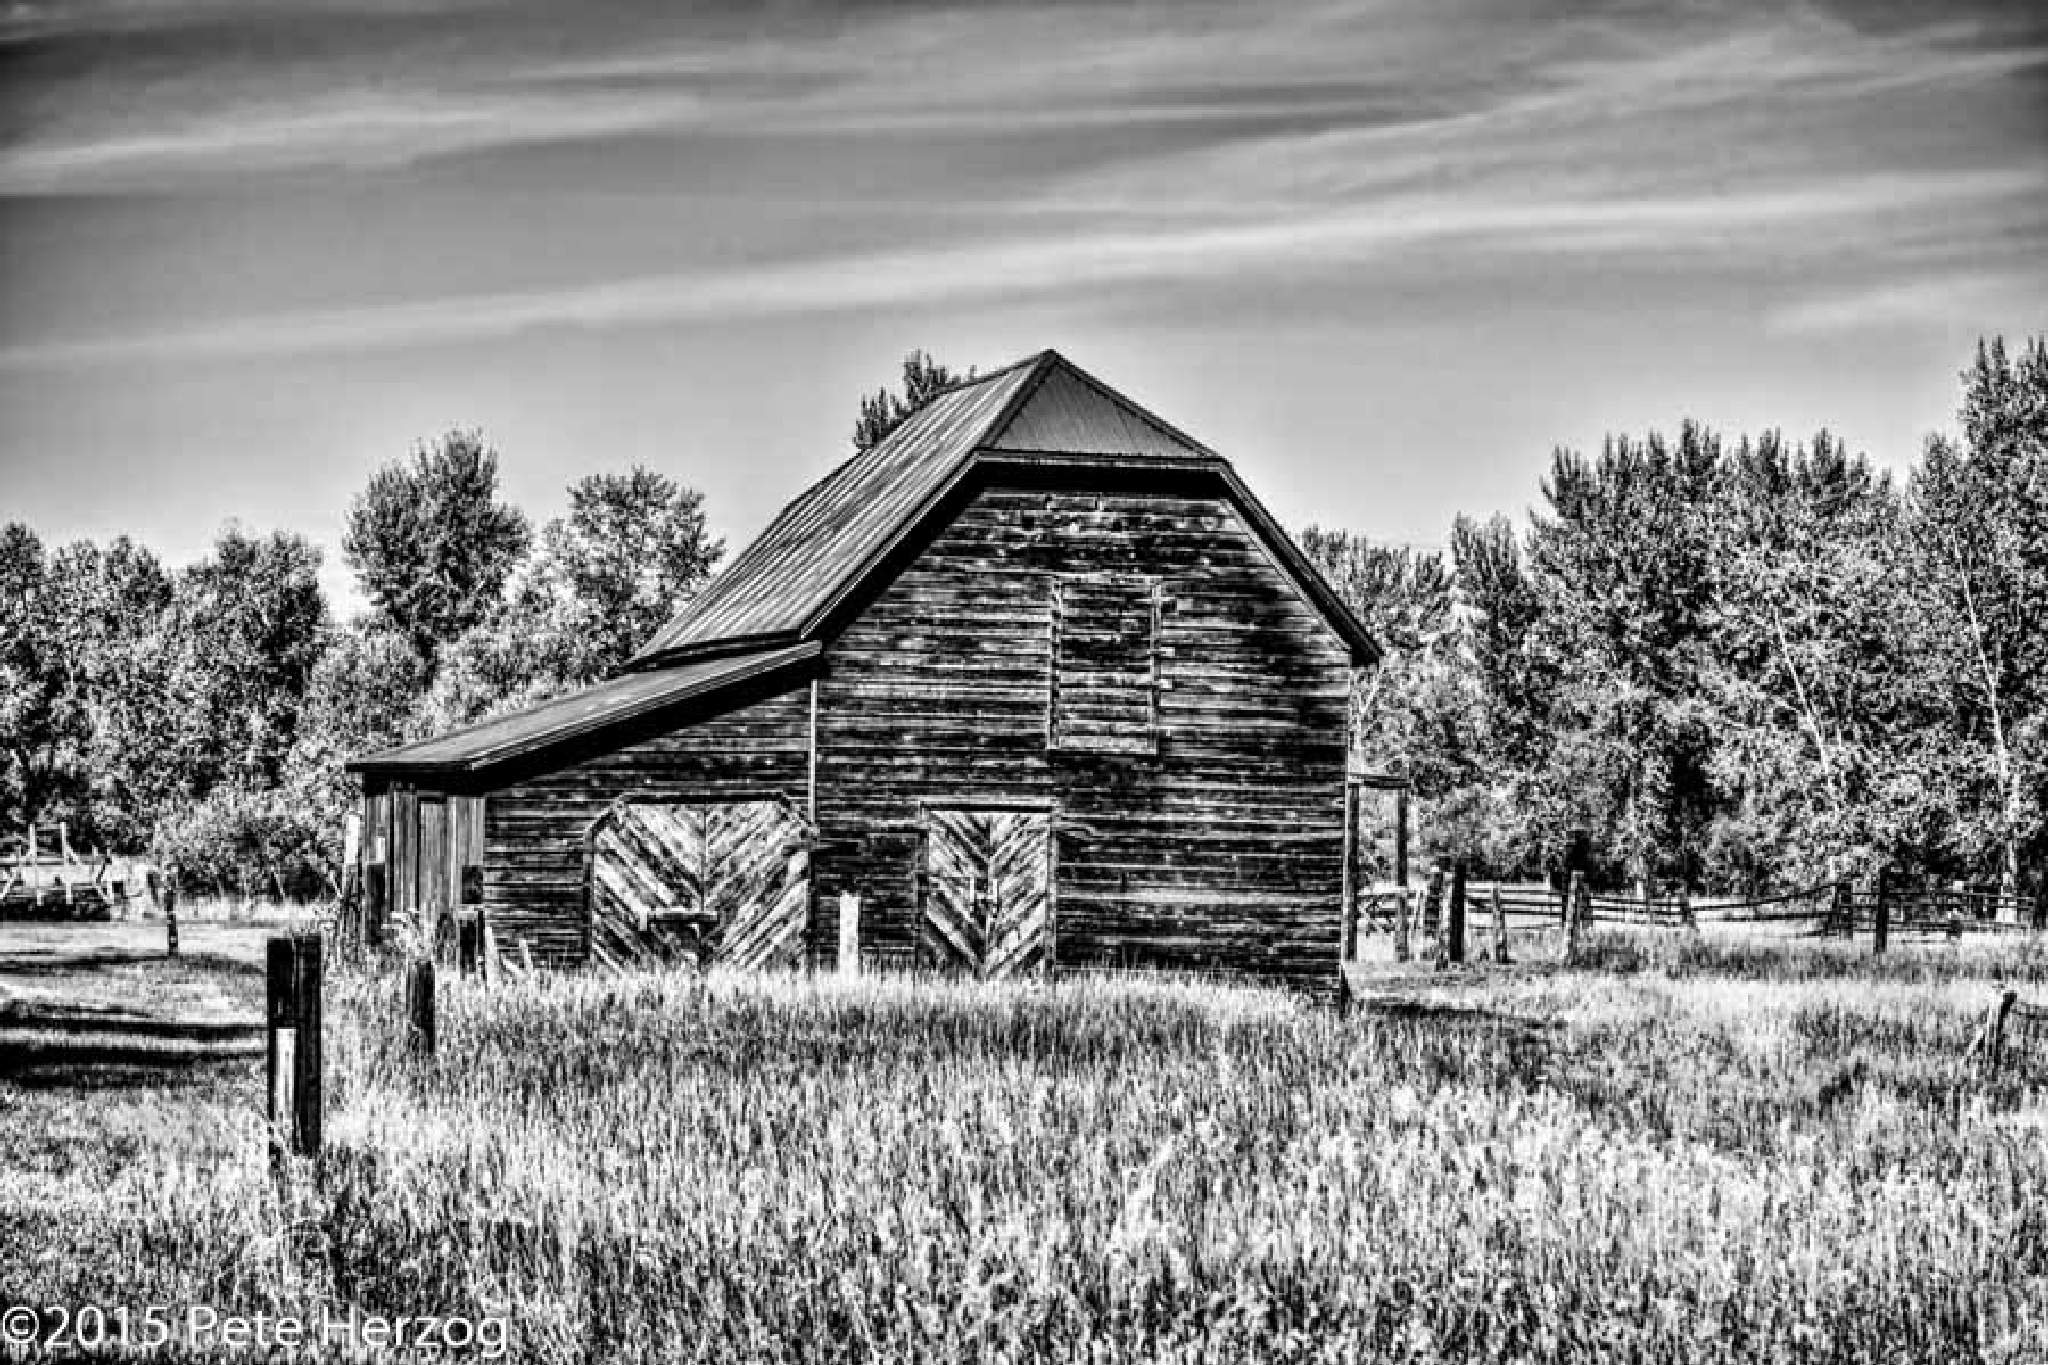 The Barn in Black and White by peter.herzog.3323